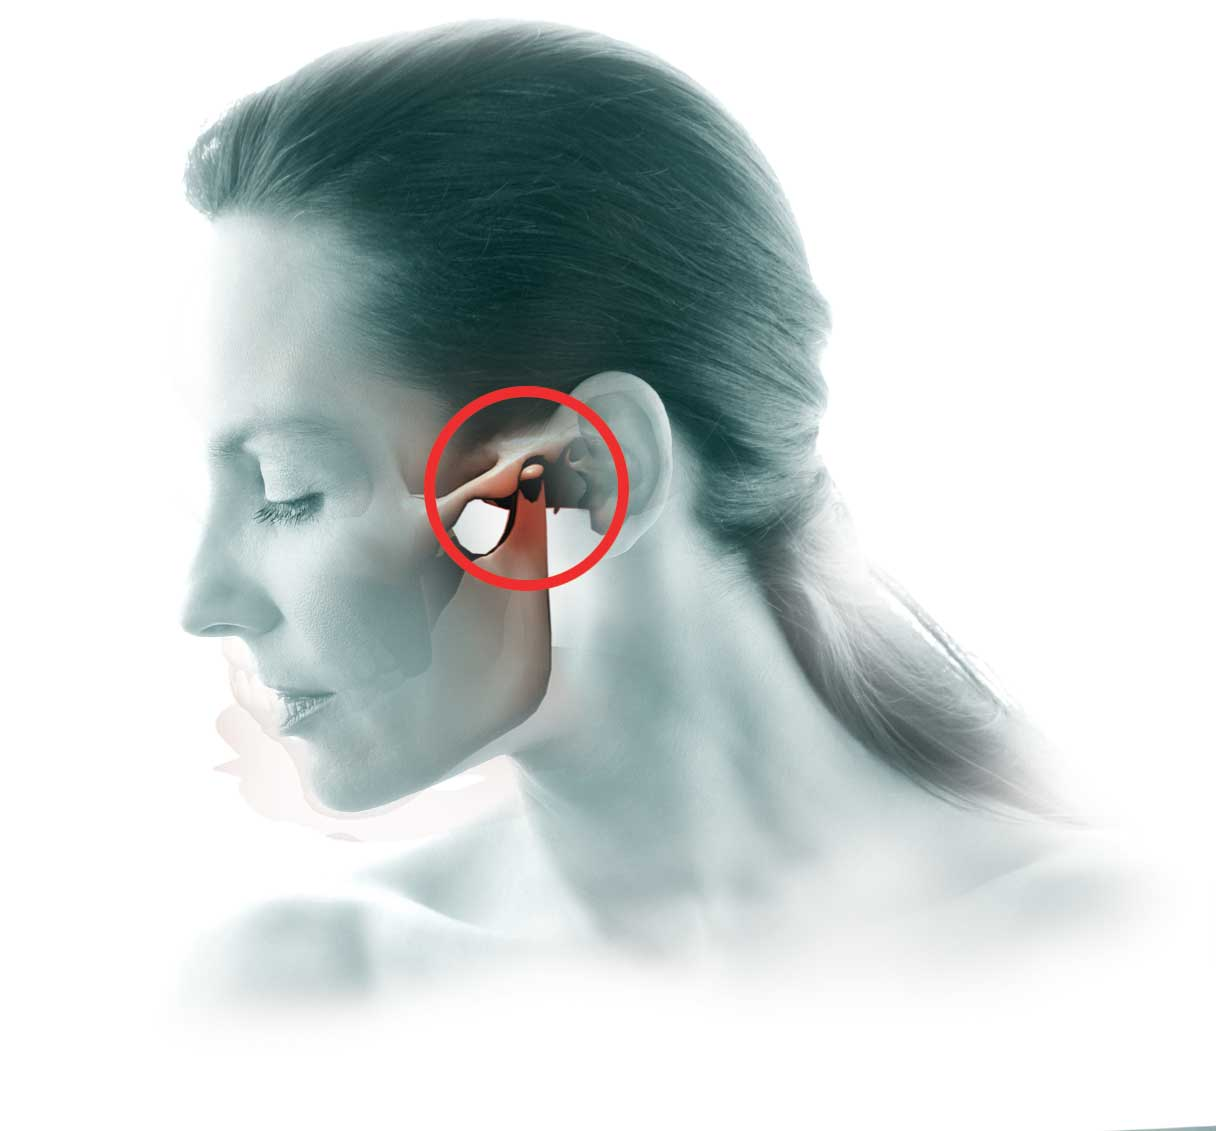 TMJ Disorder And Chiropractic Care